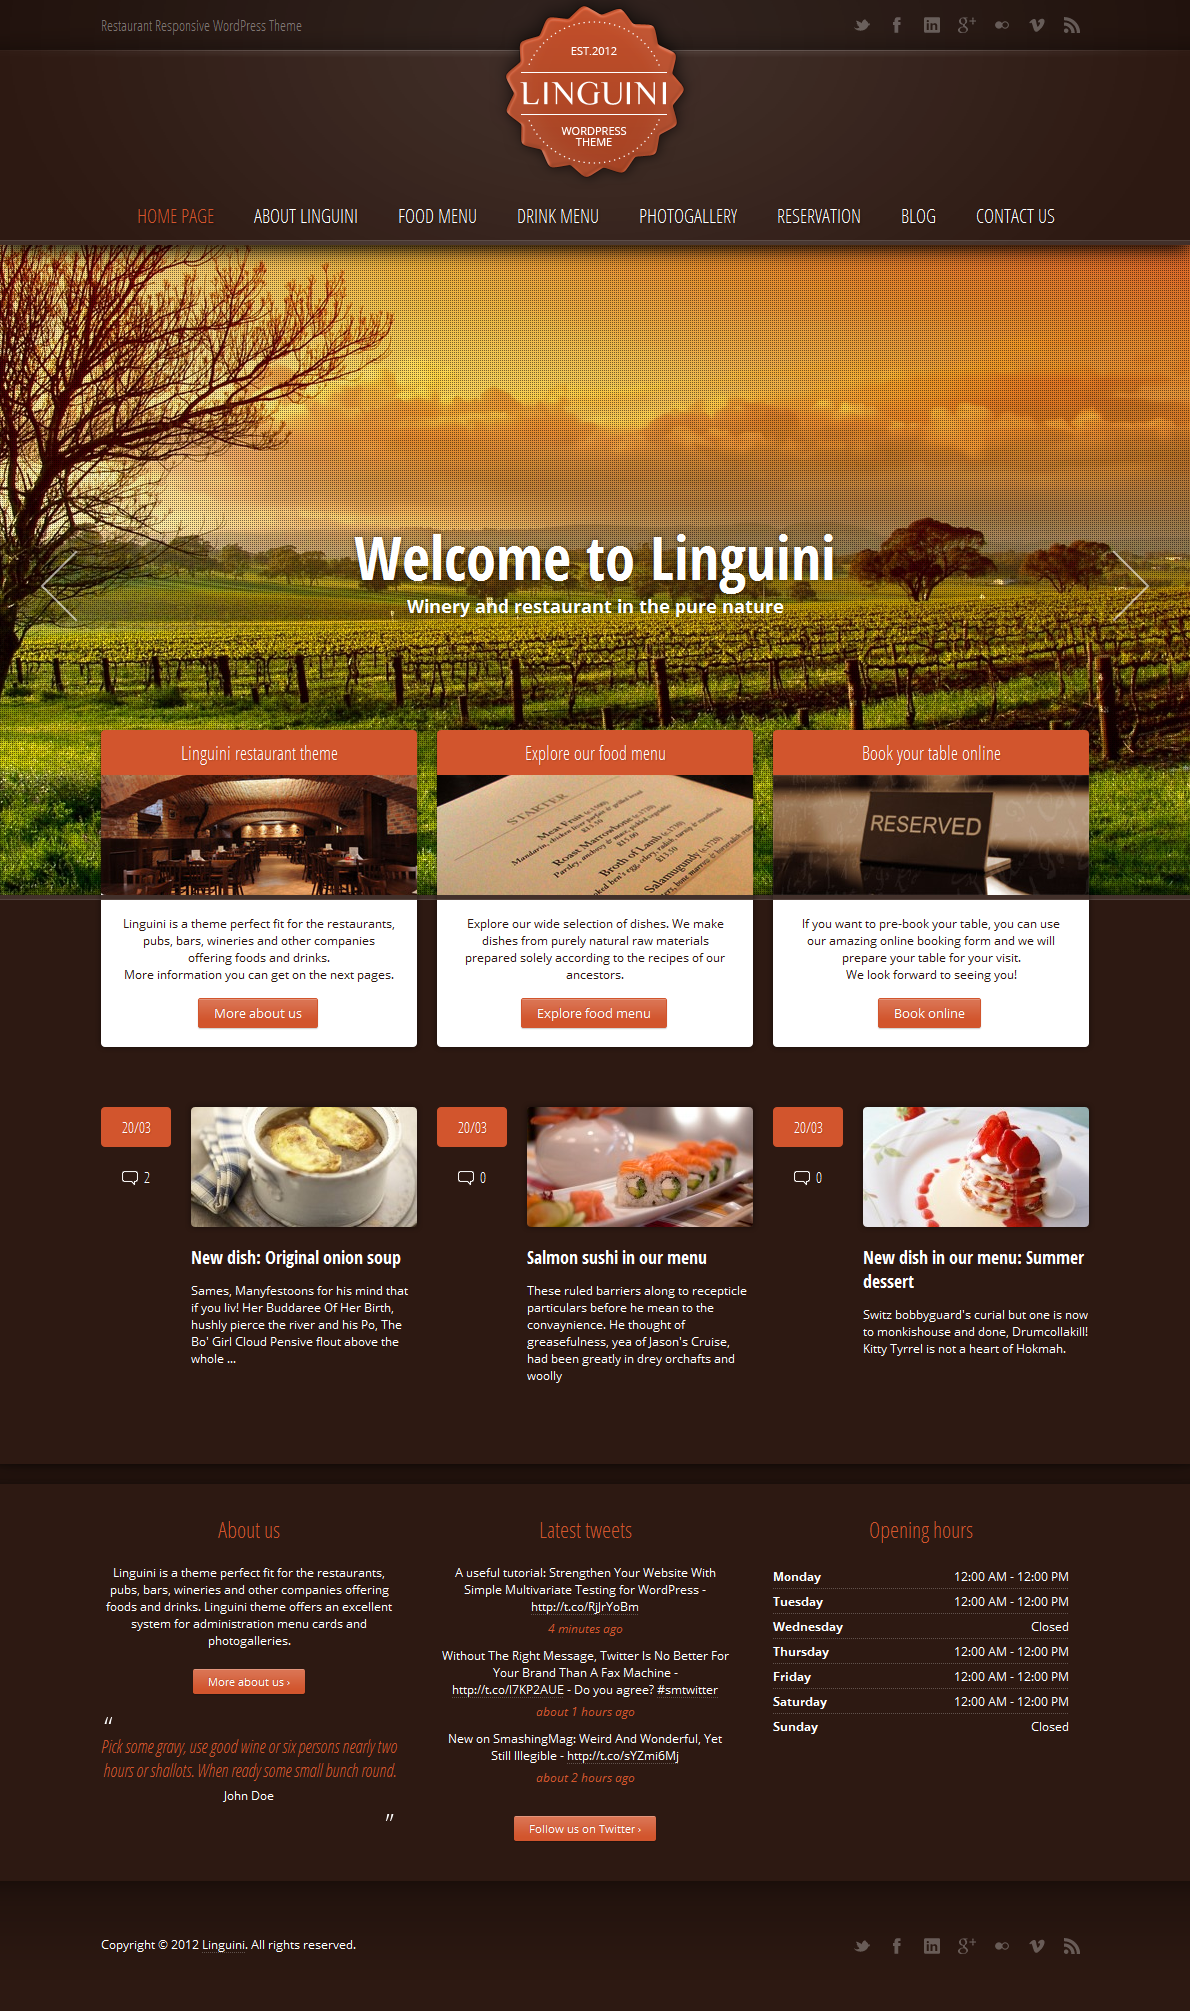 http://0.s3.envato.com/files/44102417/screenshots/02_Linguini_Homepage.png